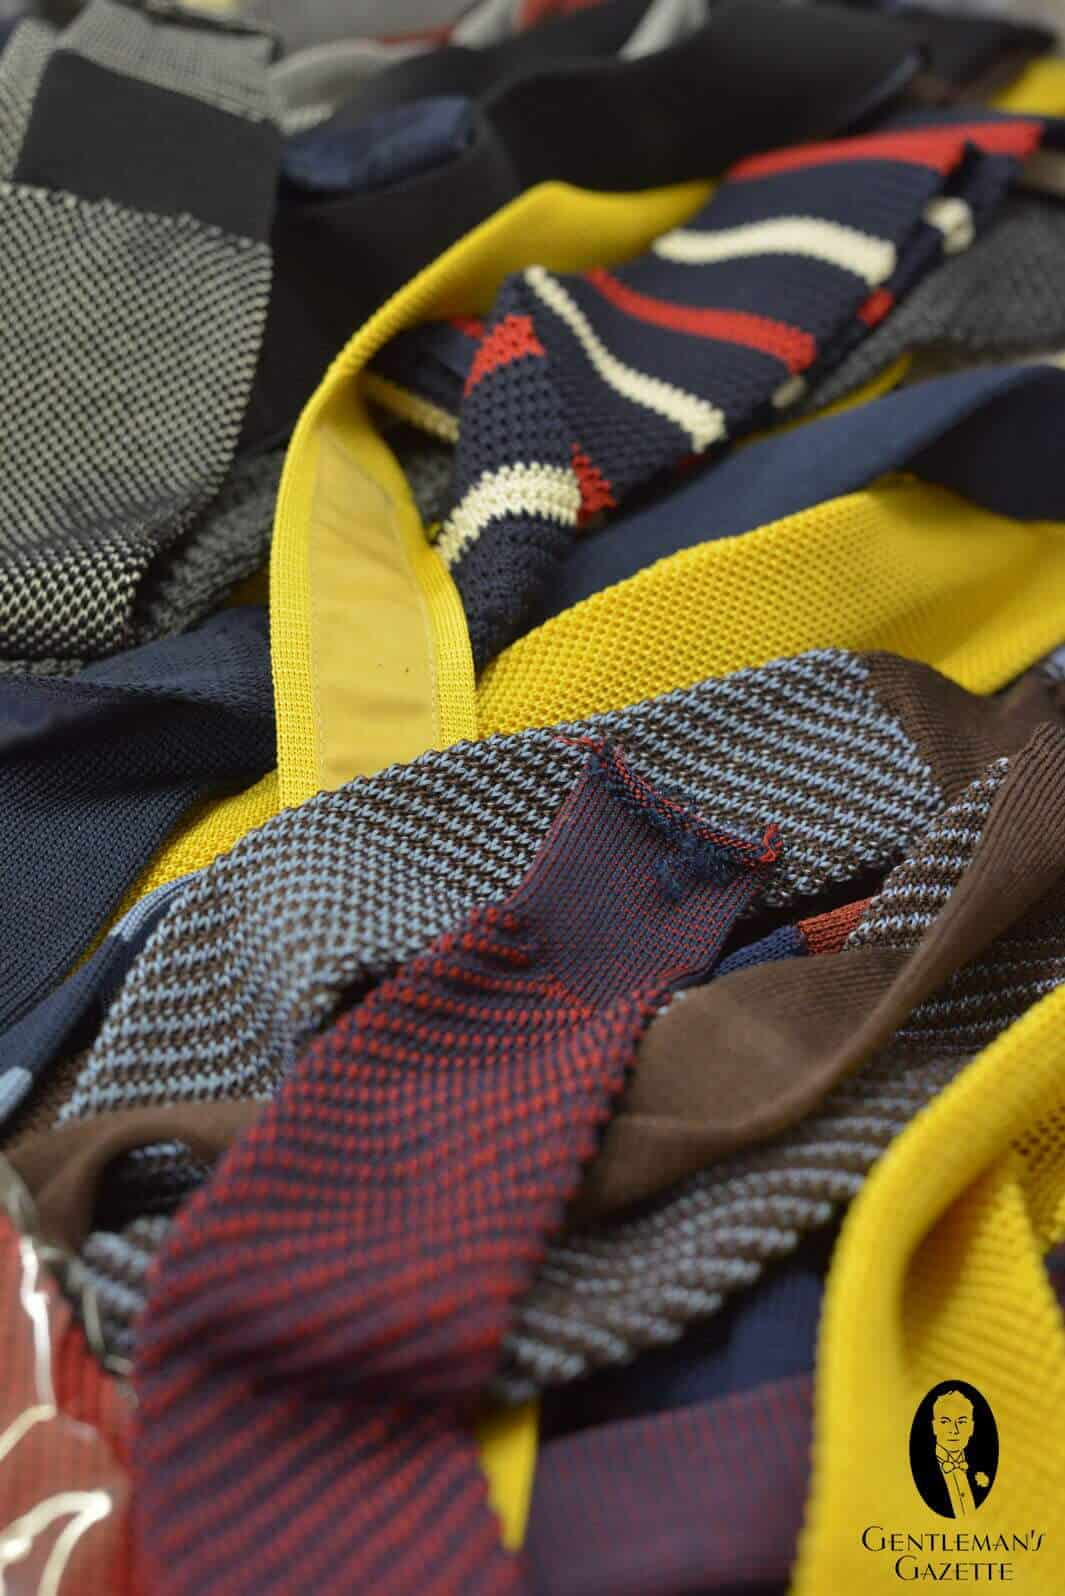 A Number Of Different Round Knit, Soft Knit Ties